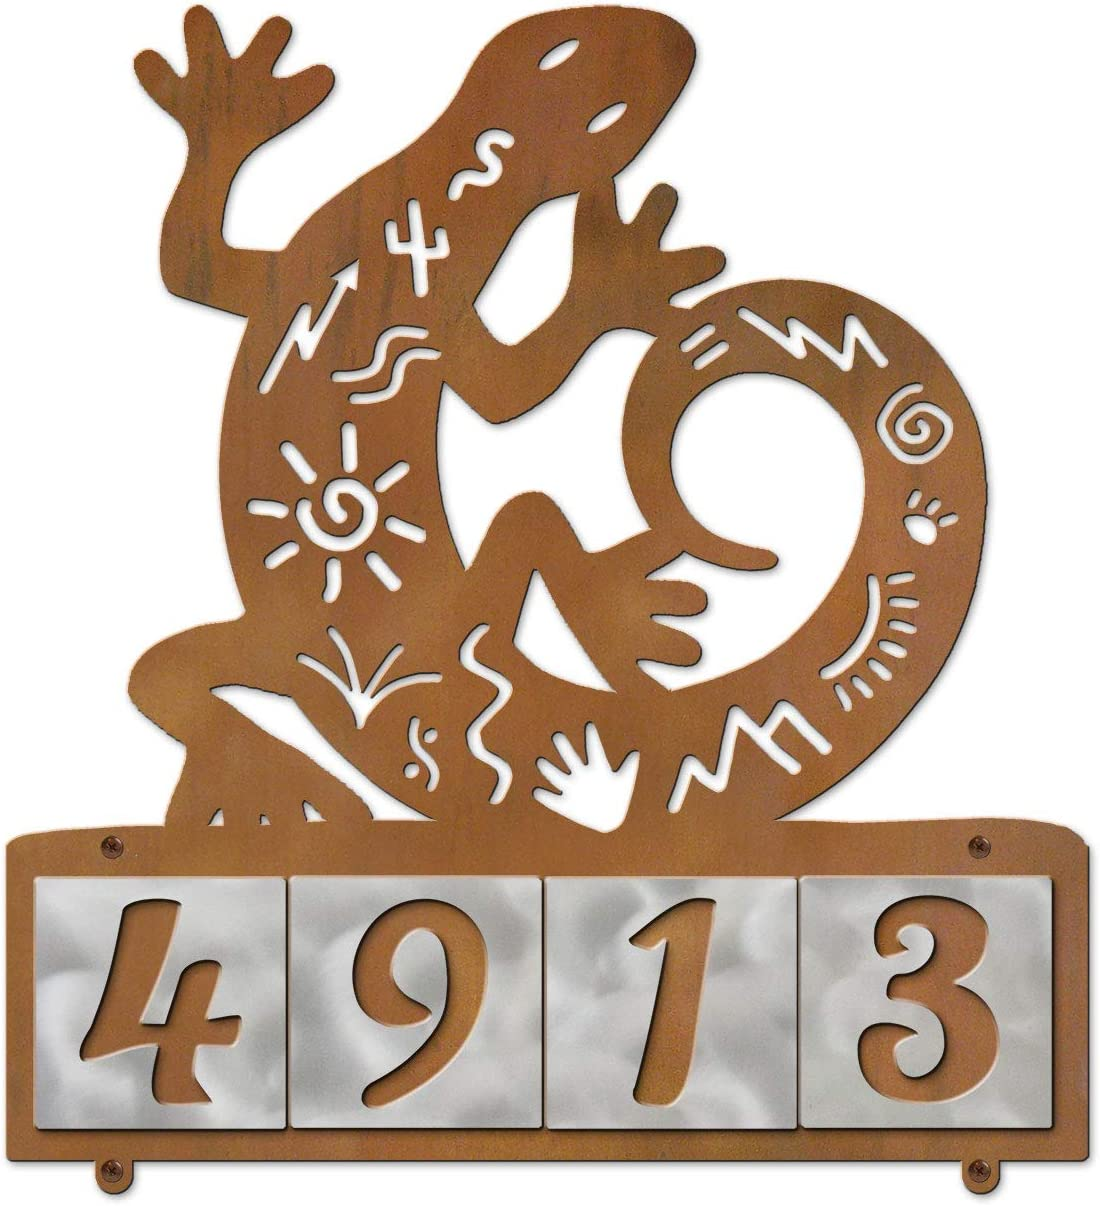 Cold Nose Creations Gecko Tales Rustic Metal Max 85% OFF Plaque Horizon with High material